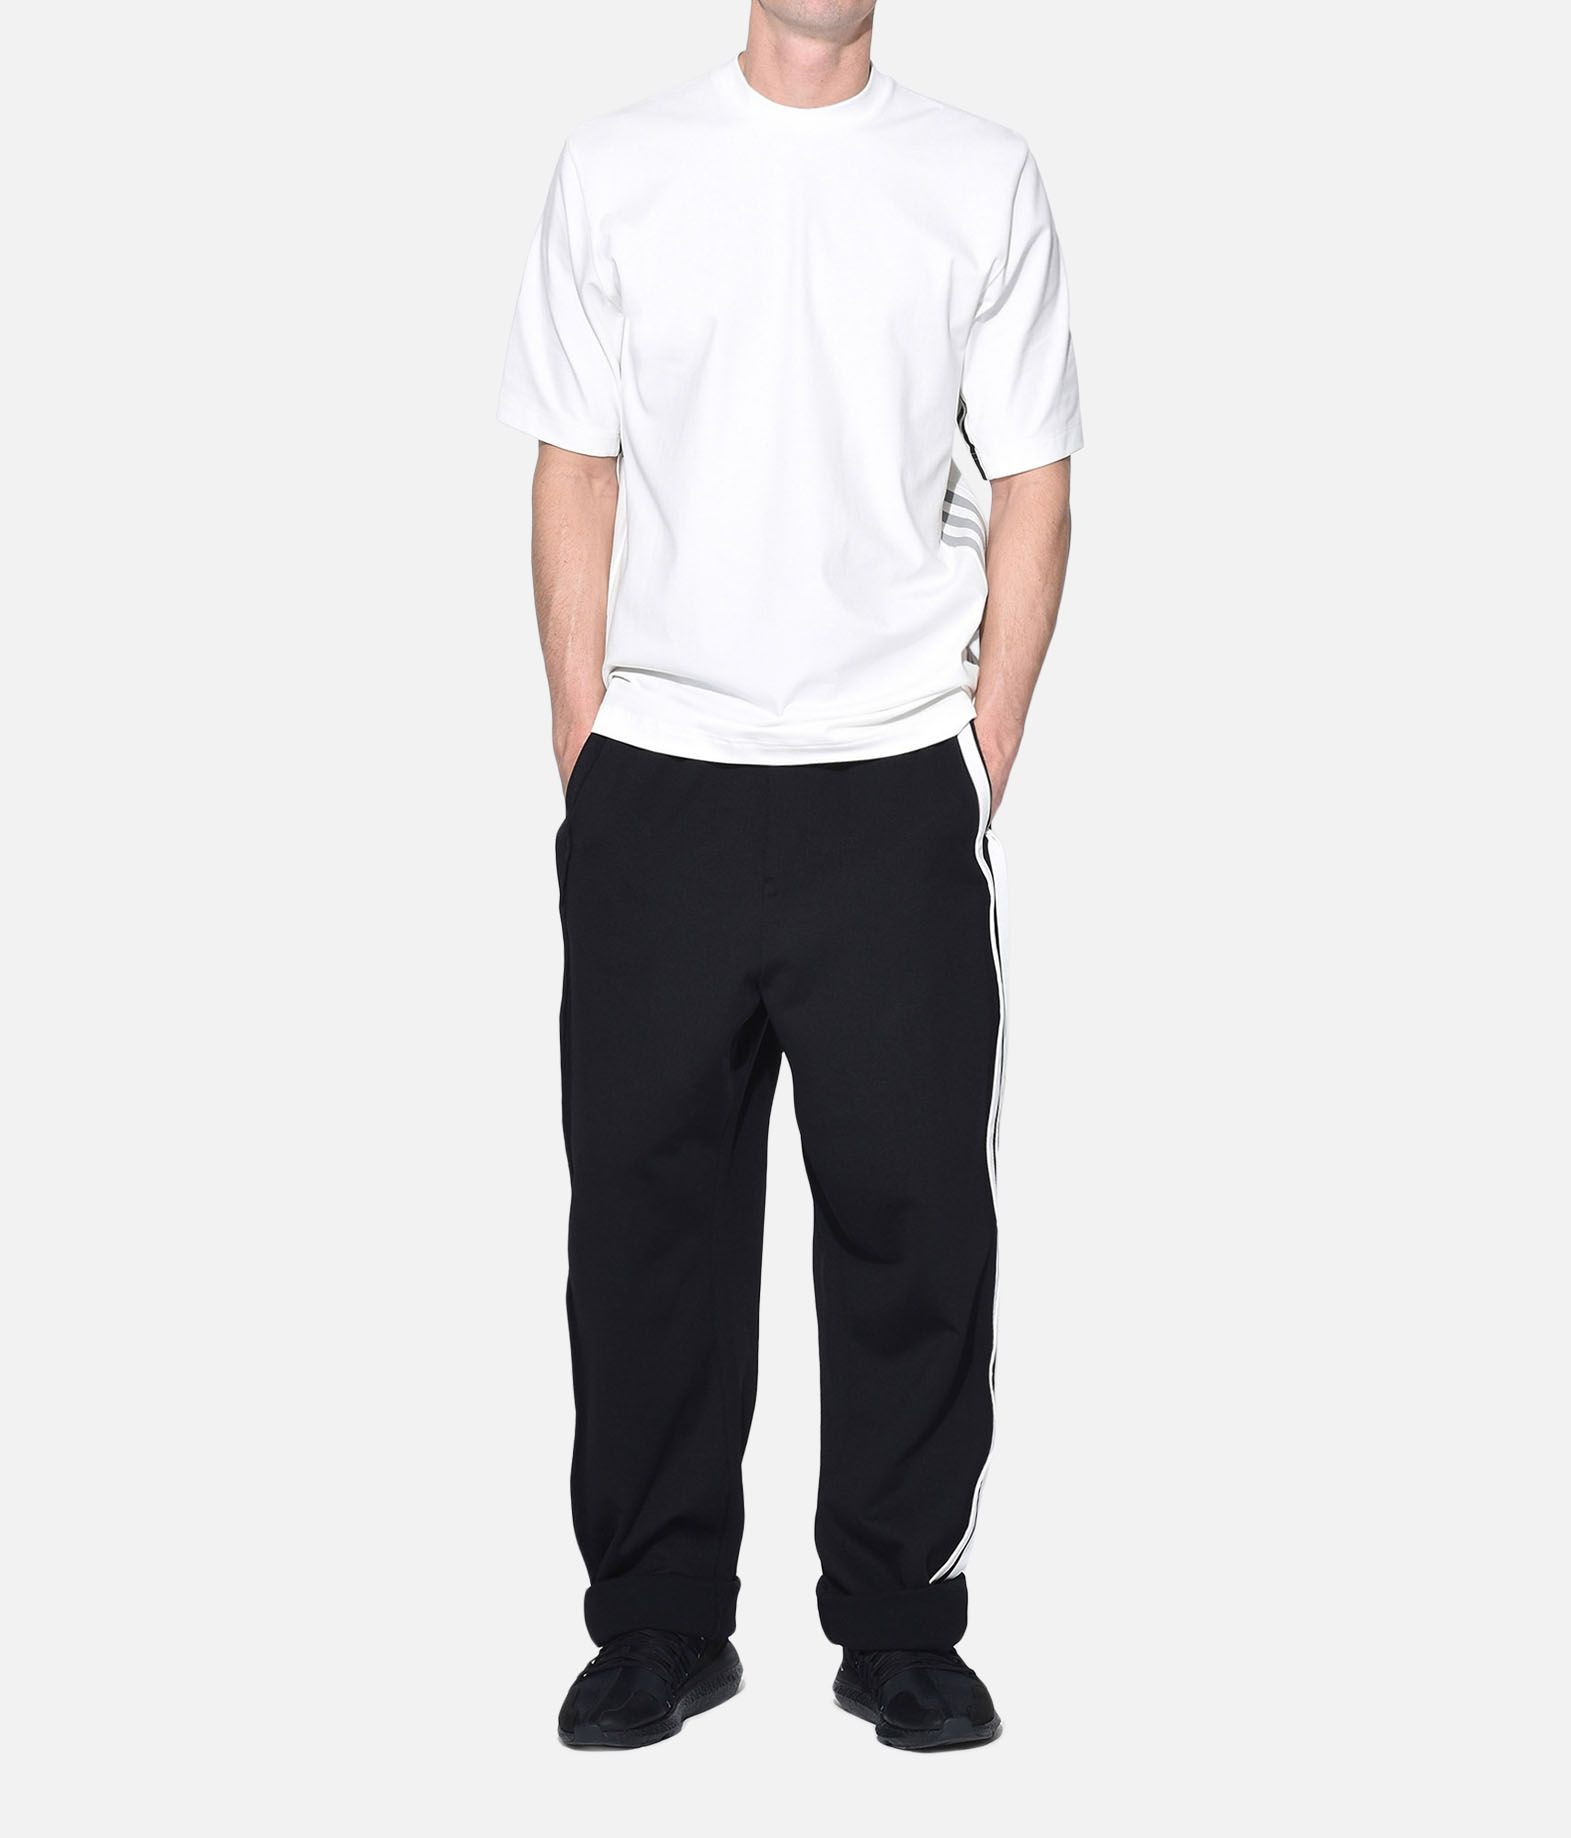 Y-3 Y-3 3-Stripes Selvedge Wide Pants Tracksuit bottoms Man a